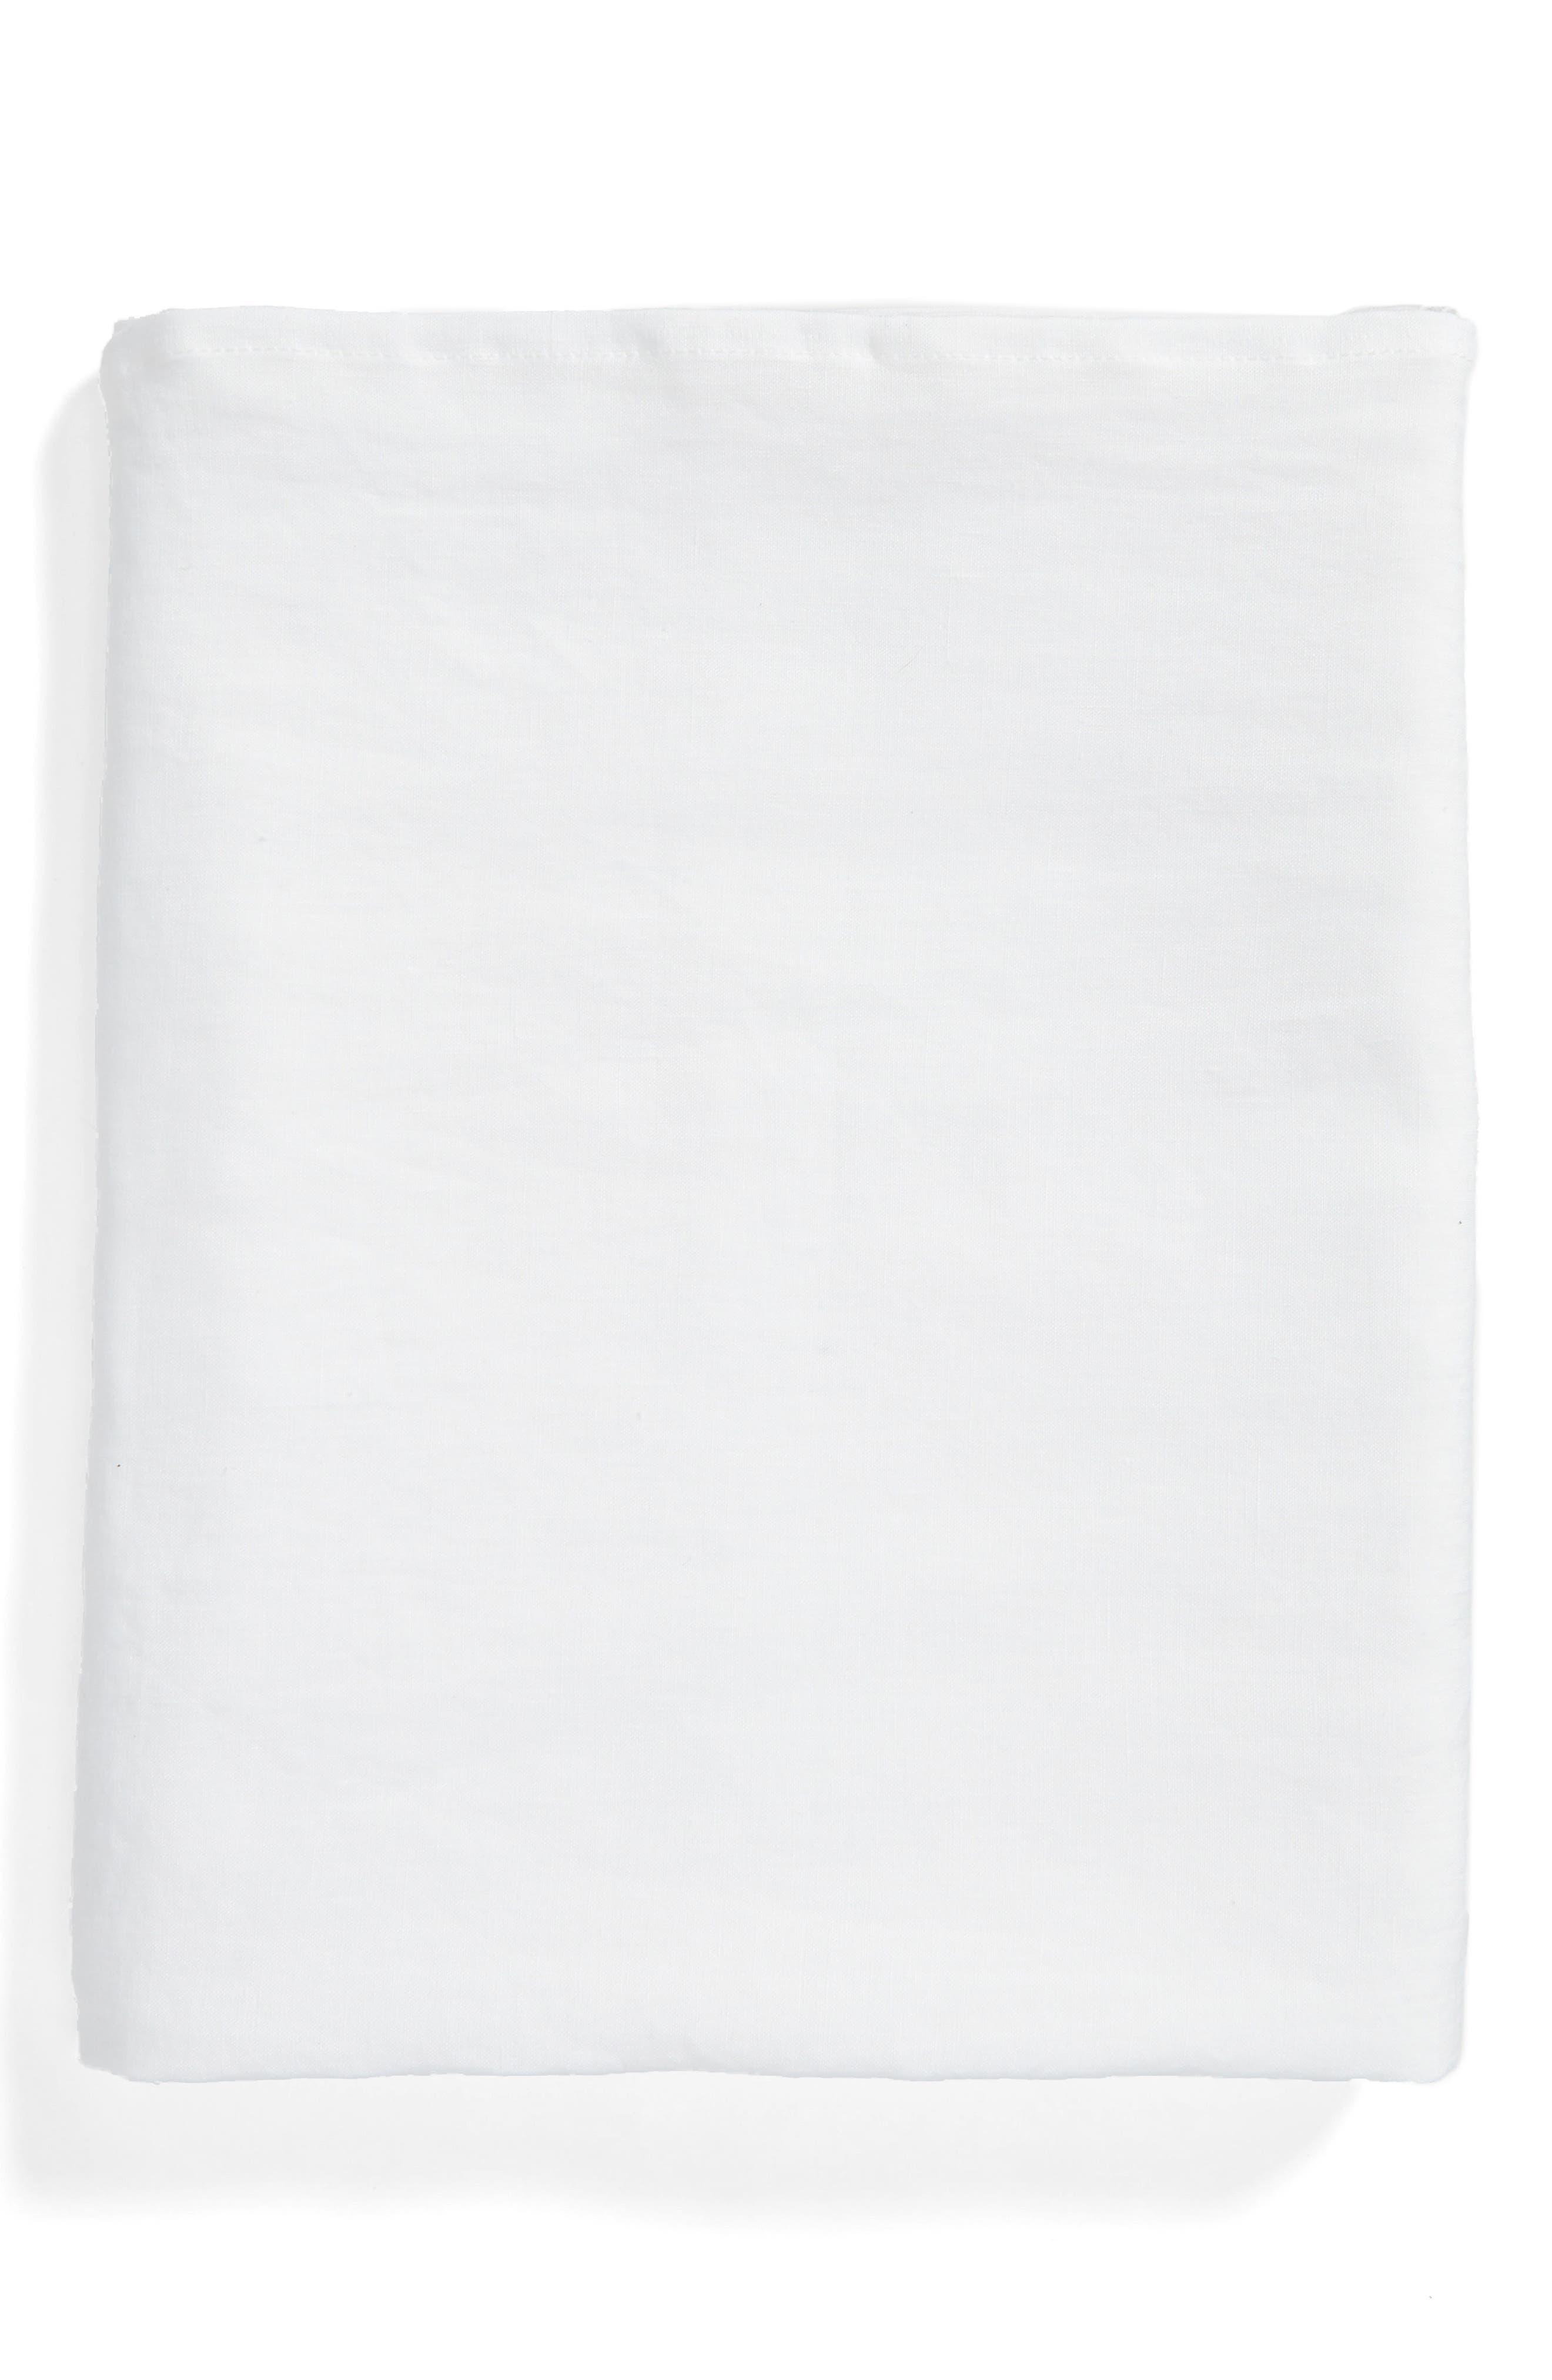 Round Linen Tablecloth,                             Main thumbnail 1, color,                             White